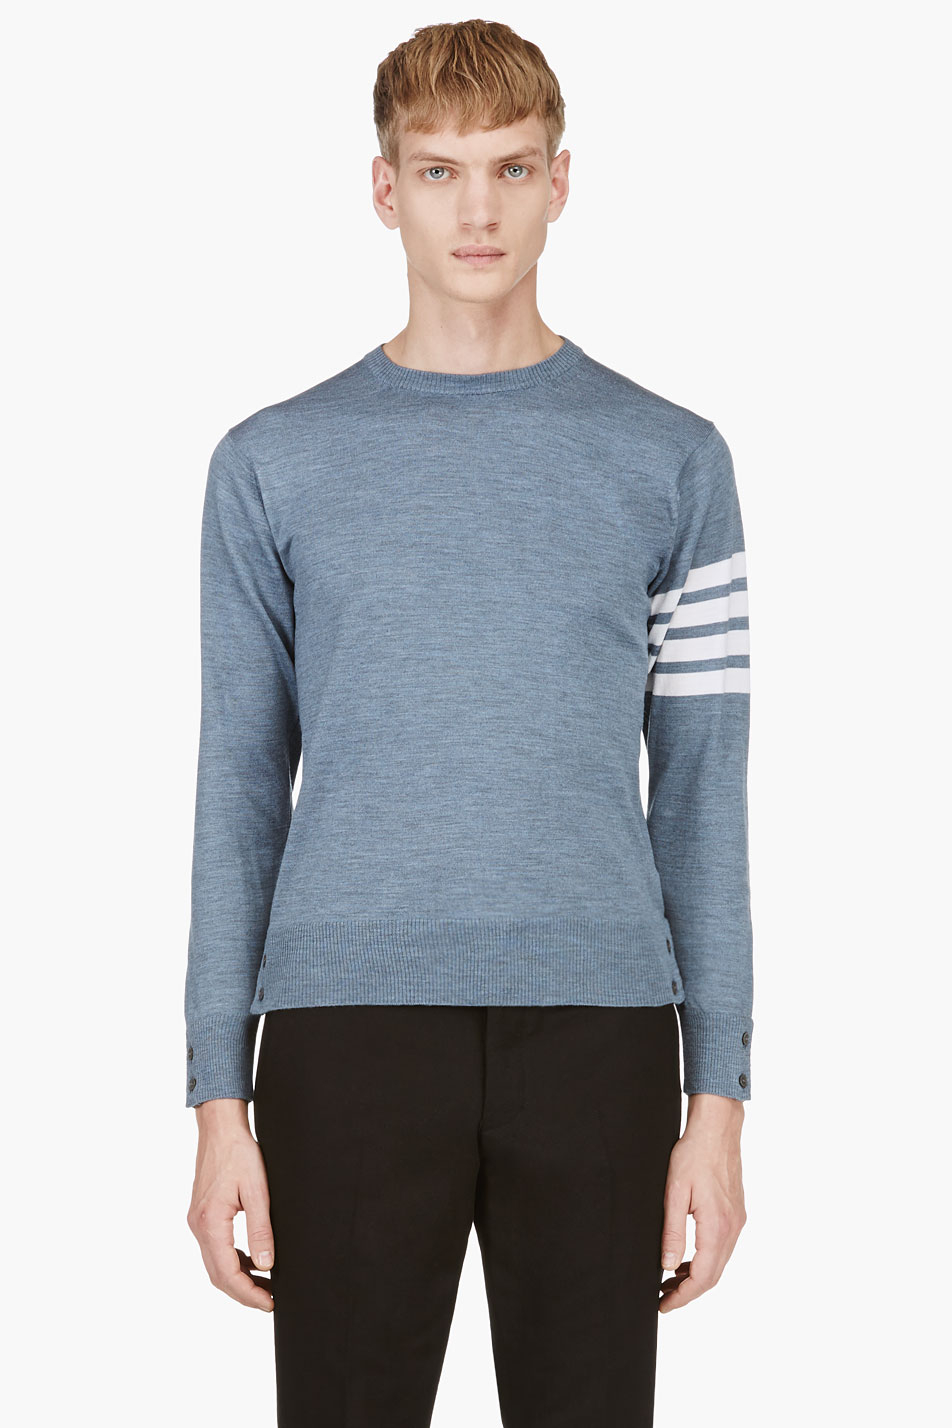 Thom browne Heather Blue Racer Stripe Sweater in Blue for Men | Lyst